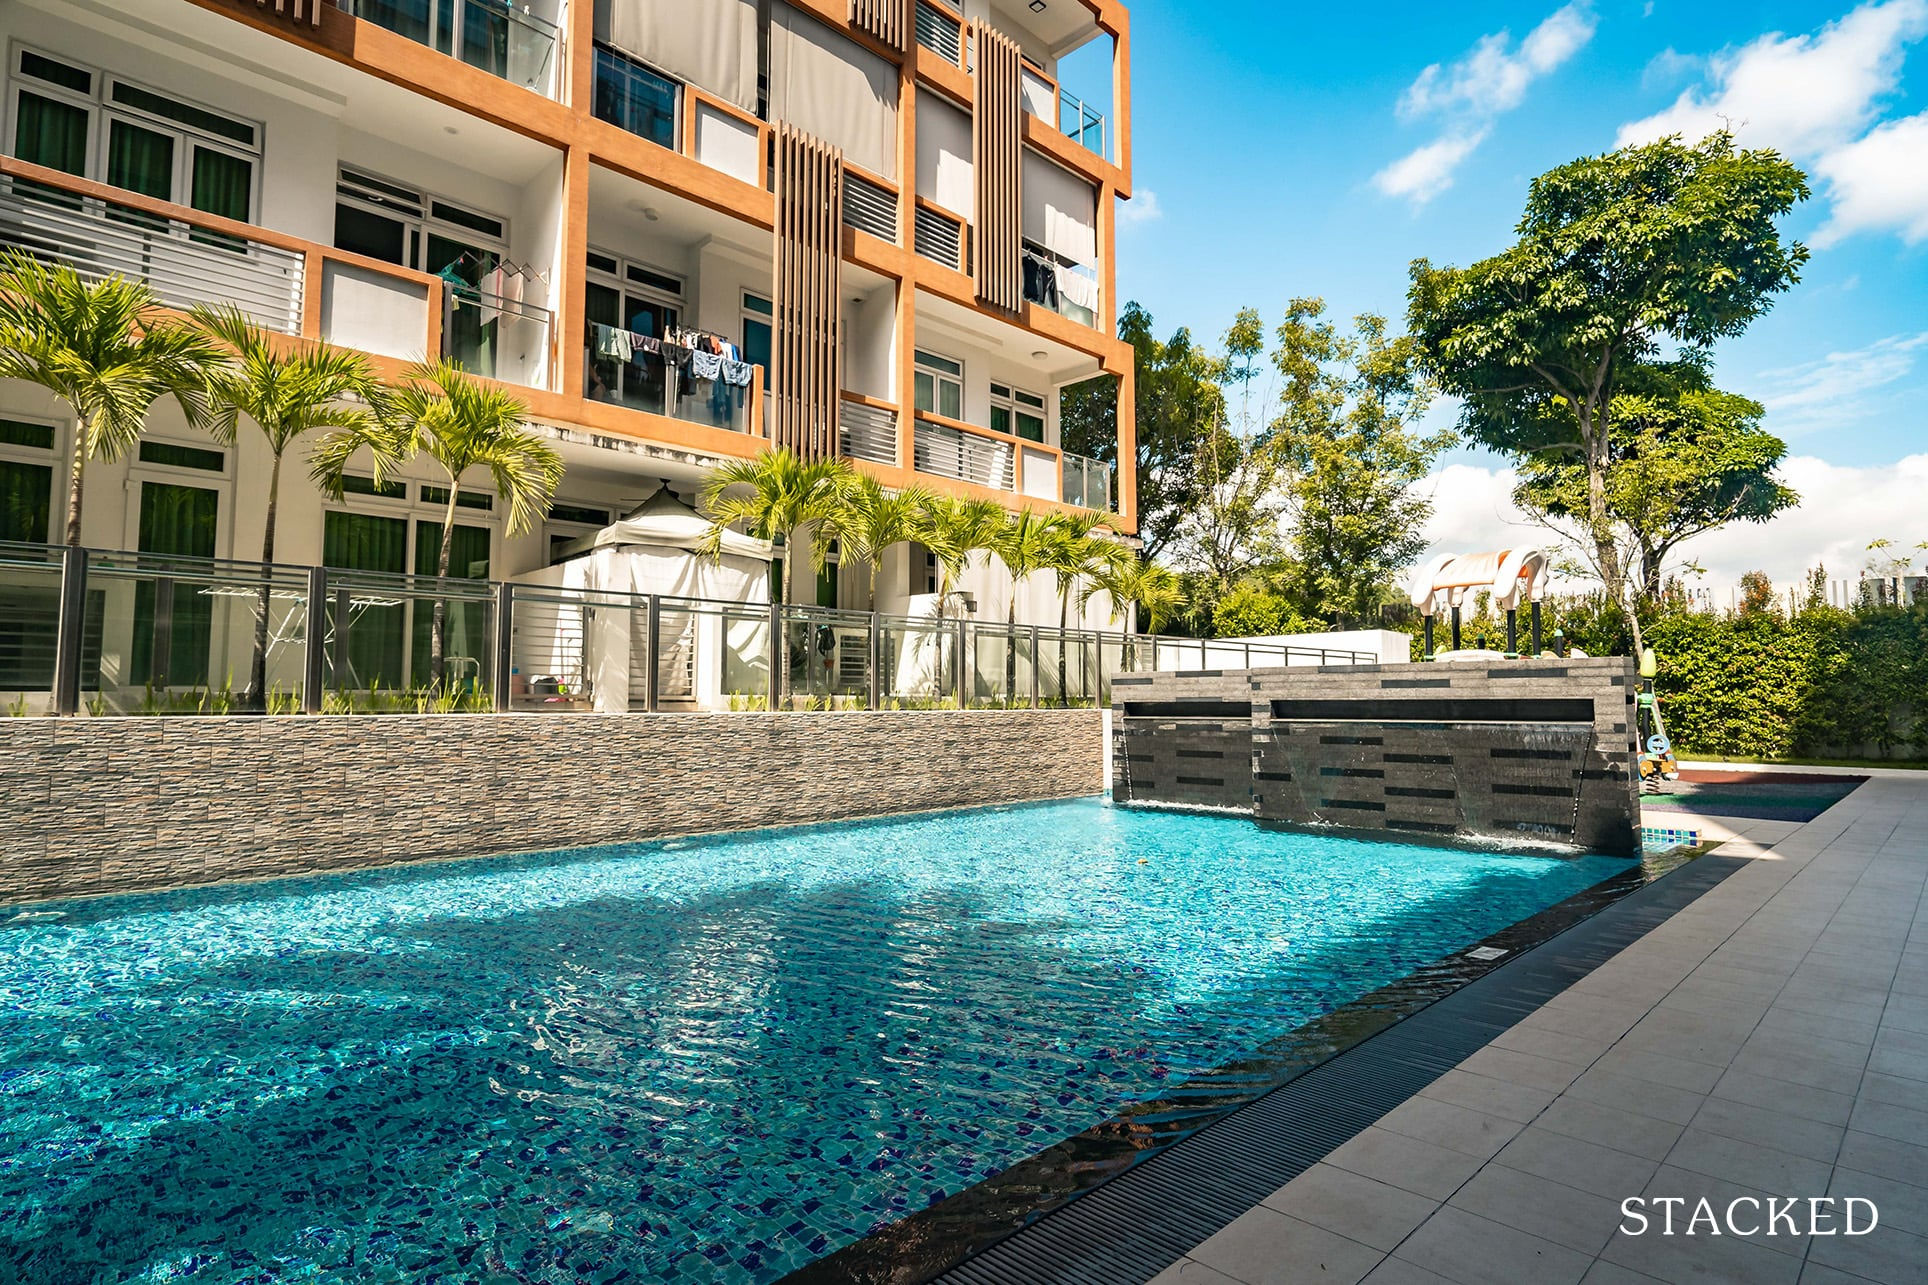 parc rosewood swimming pool 10